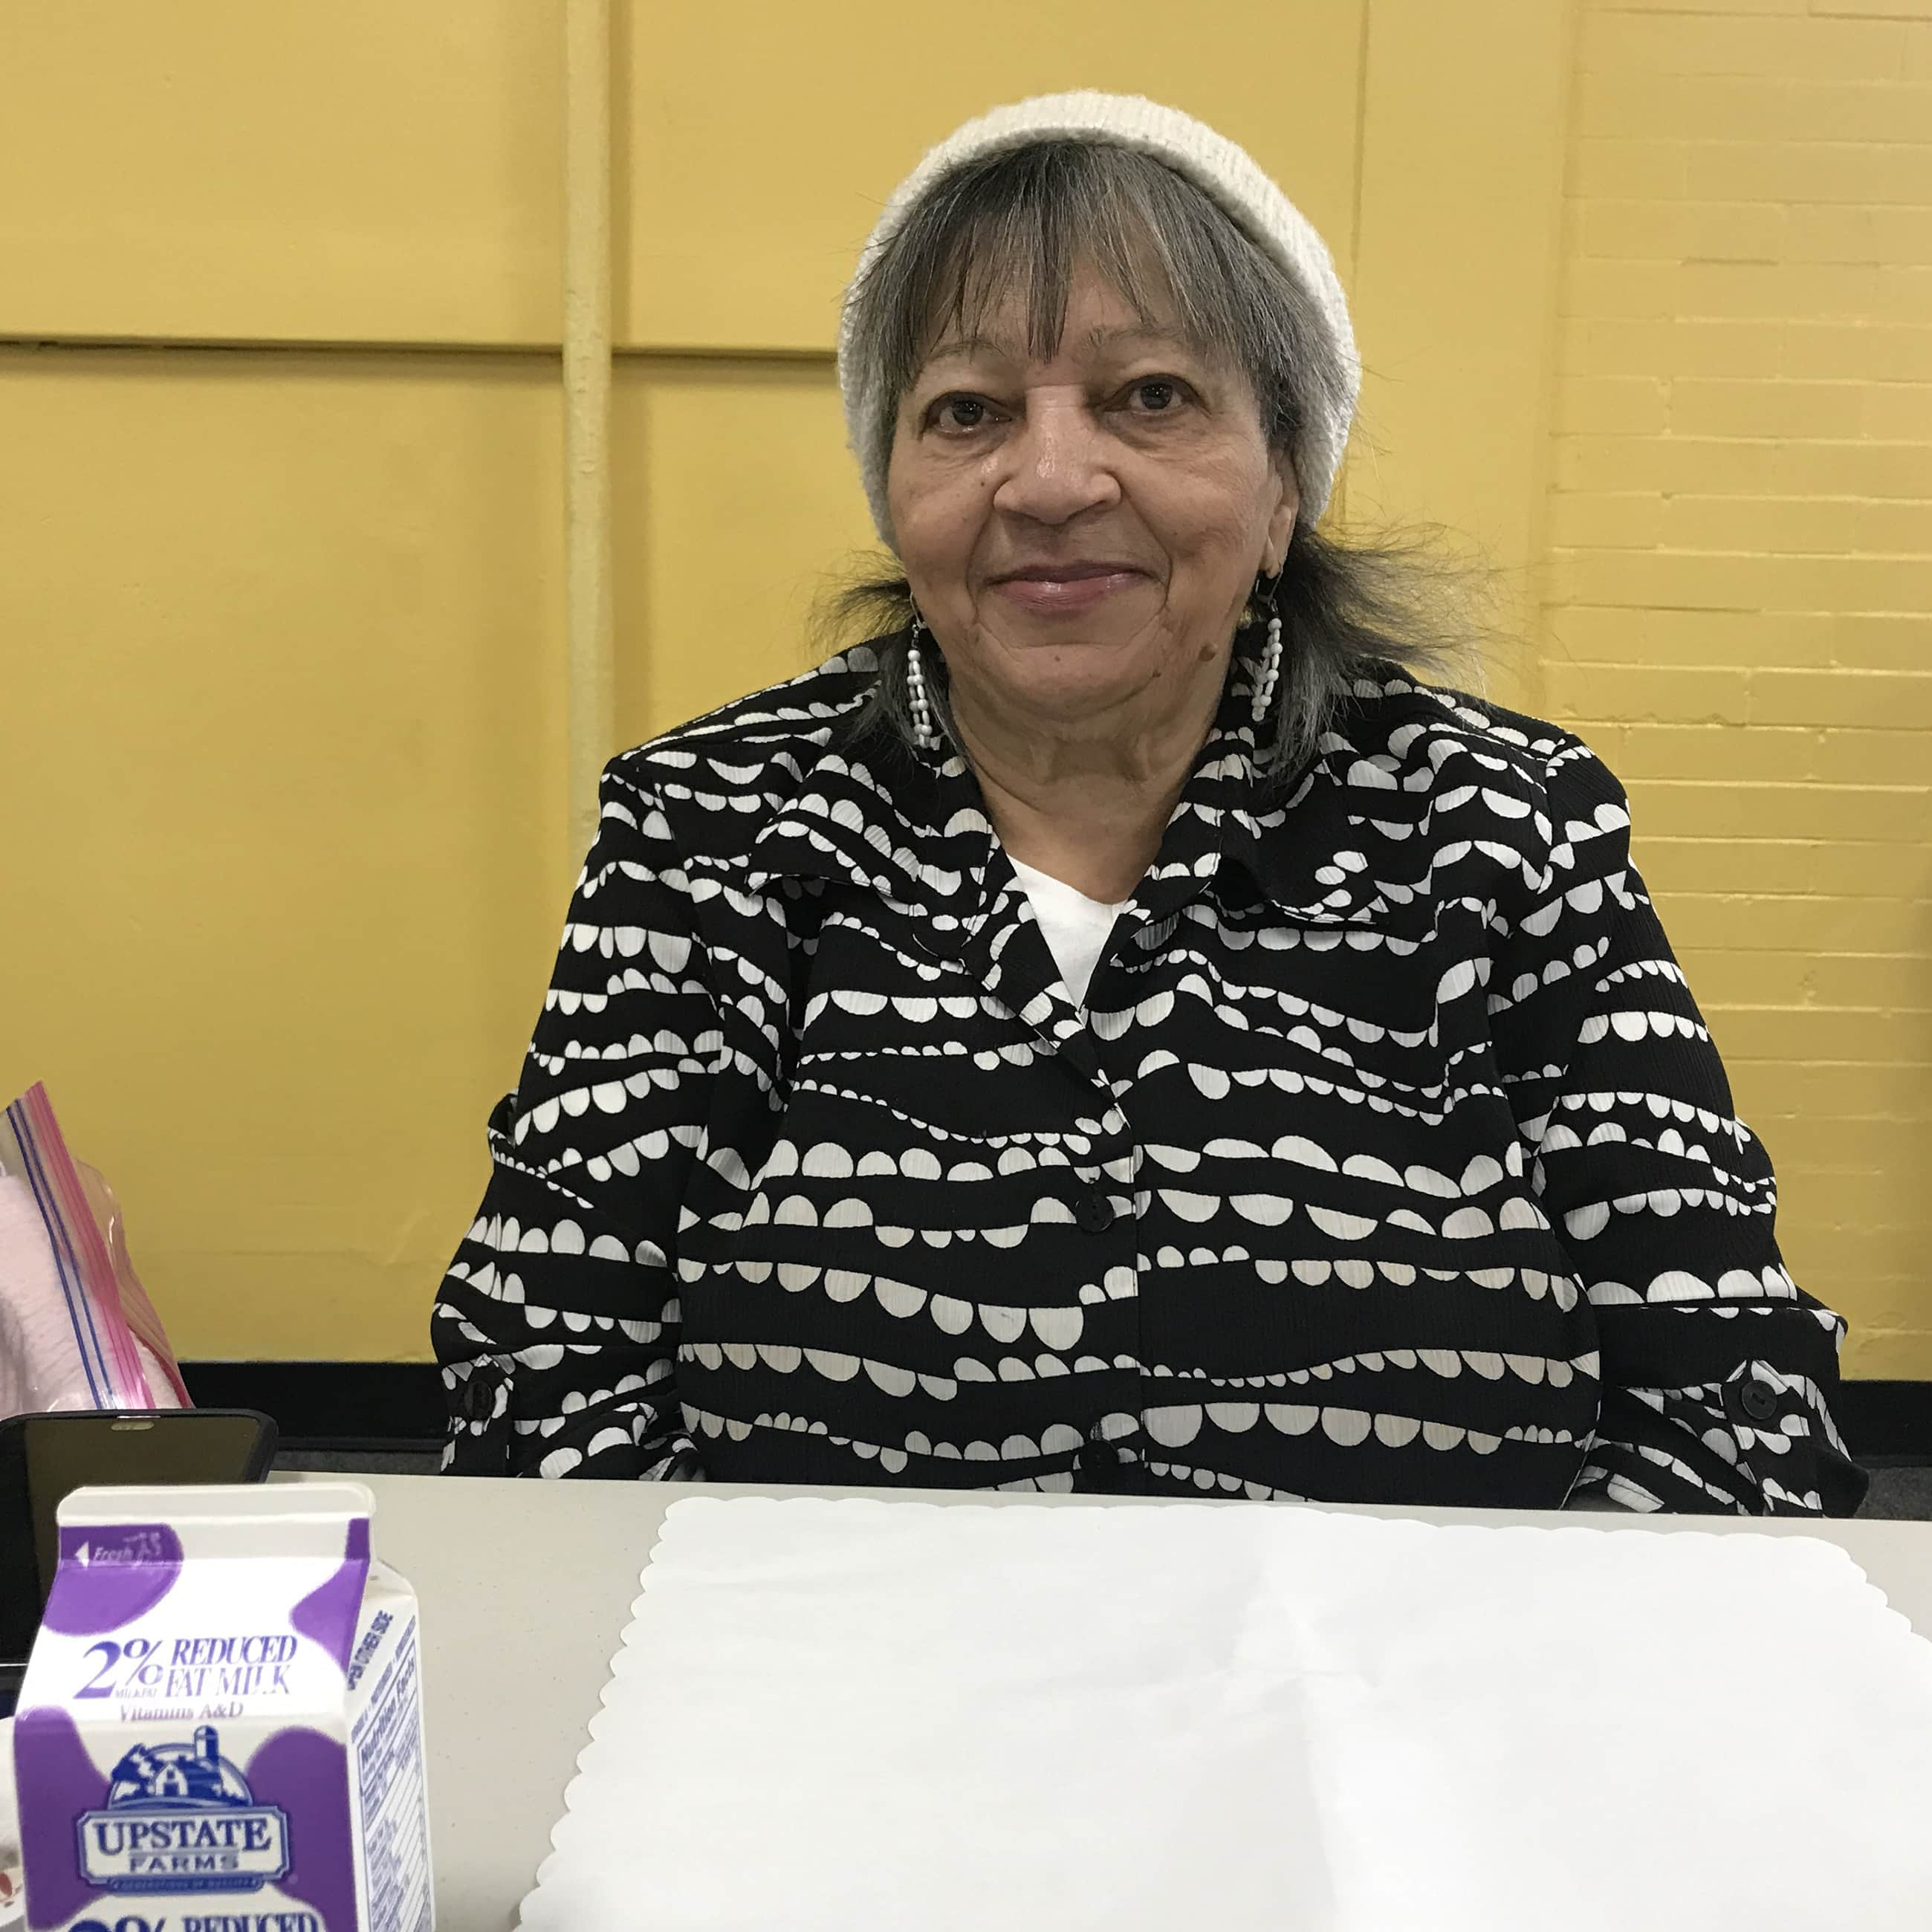 Olga Cepeda visits the Westcott Community Center in Syracuse, New York, for the Senior Nutrition Program.